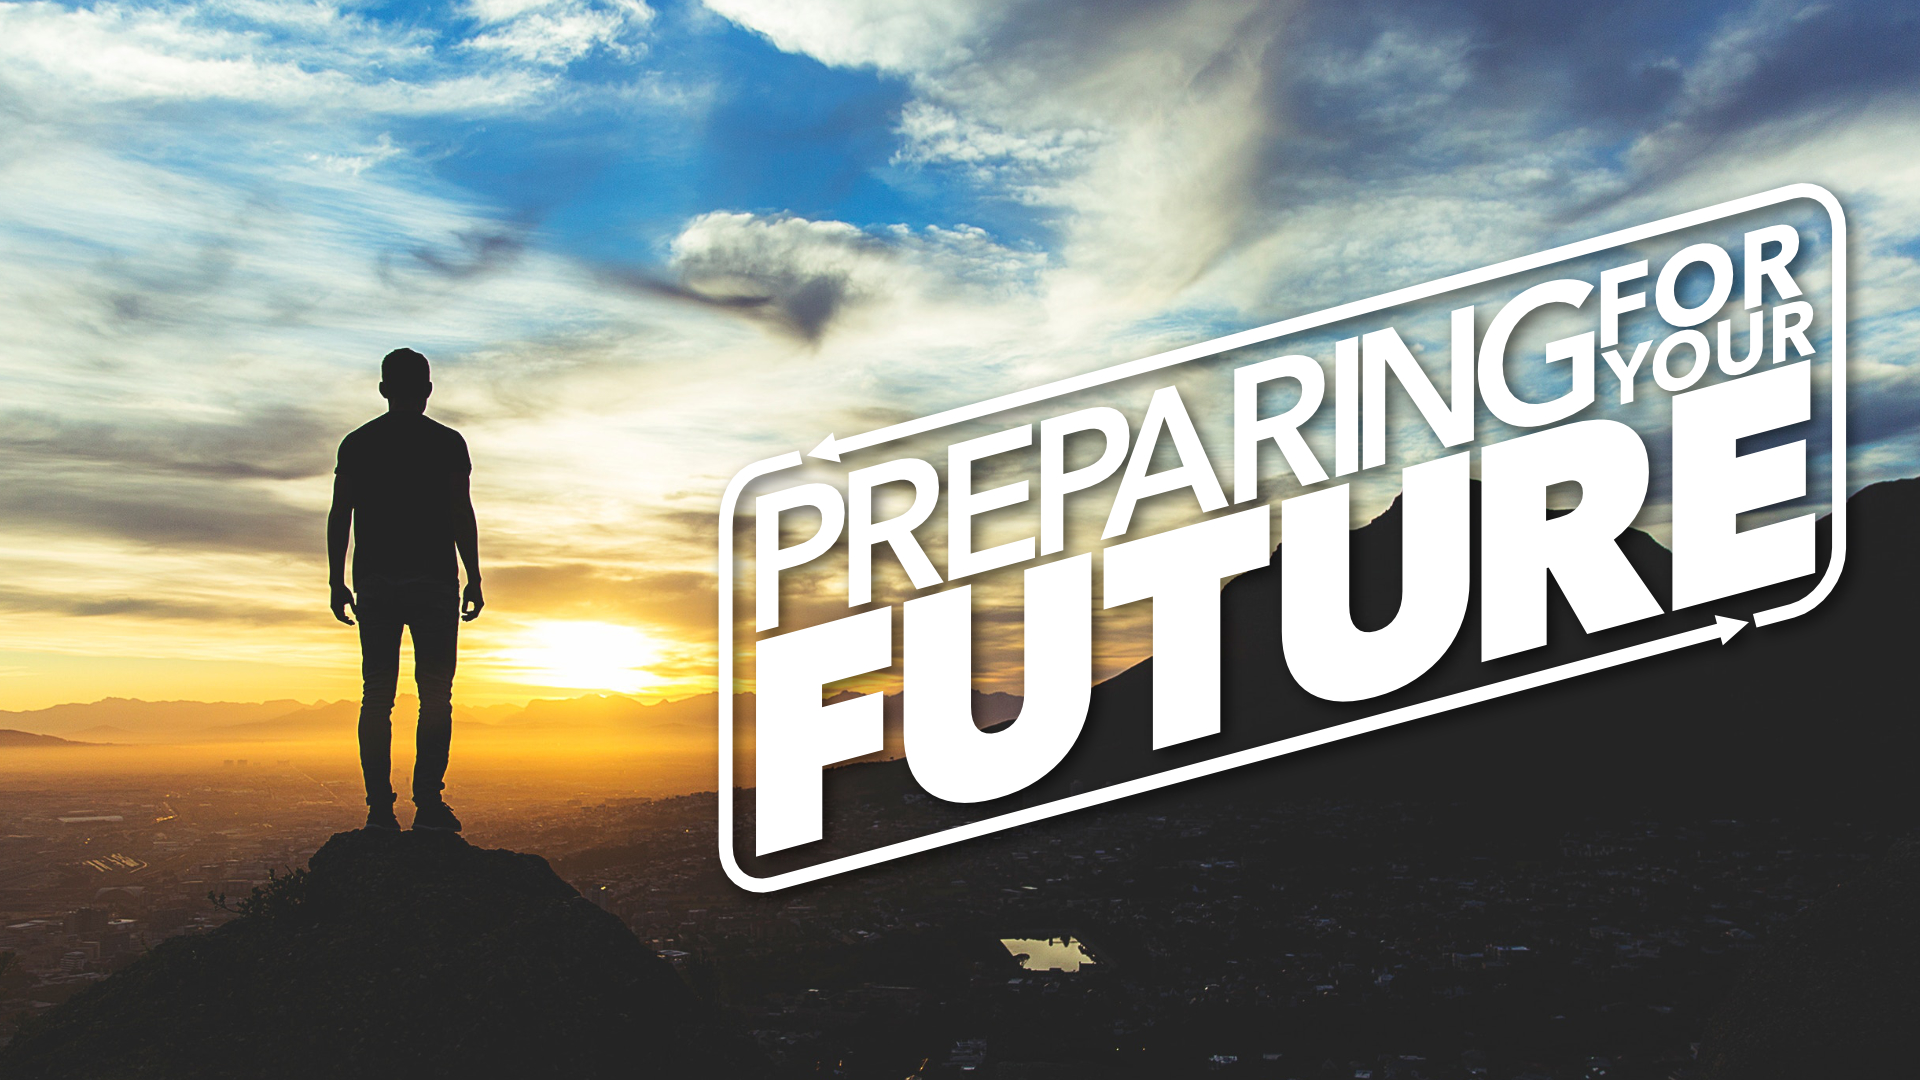 Preparing for Your Future • Dec. 31, 2017 - Jan. 28, 2018